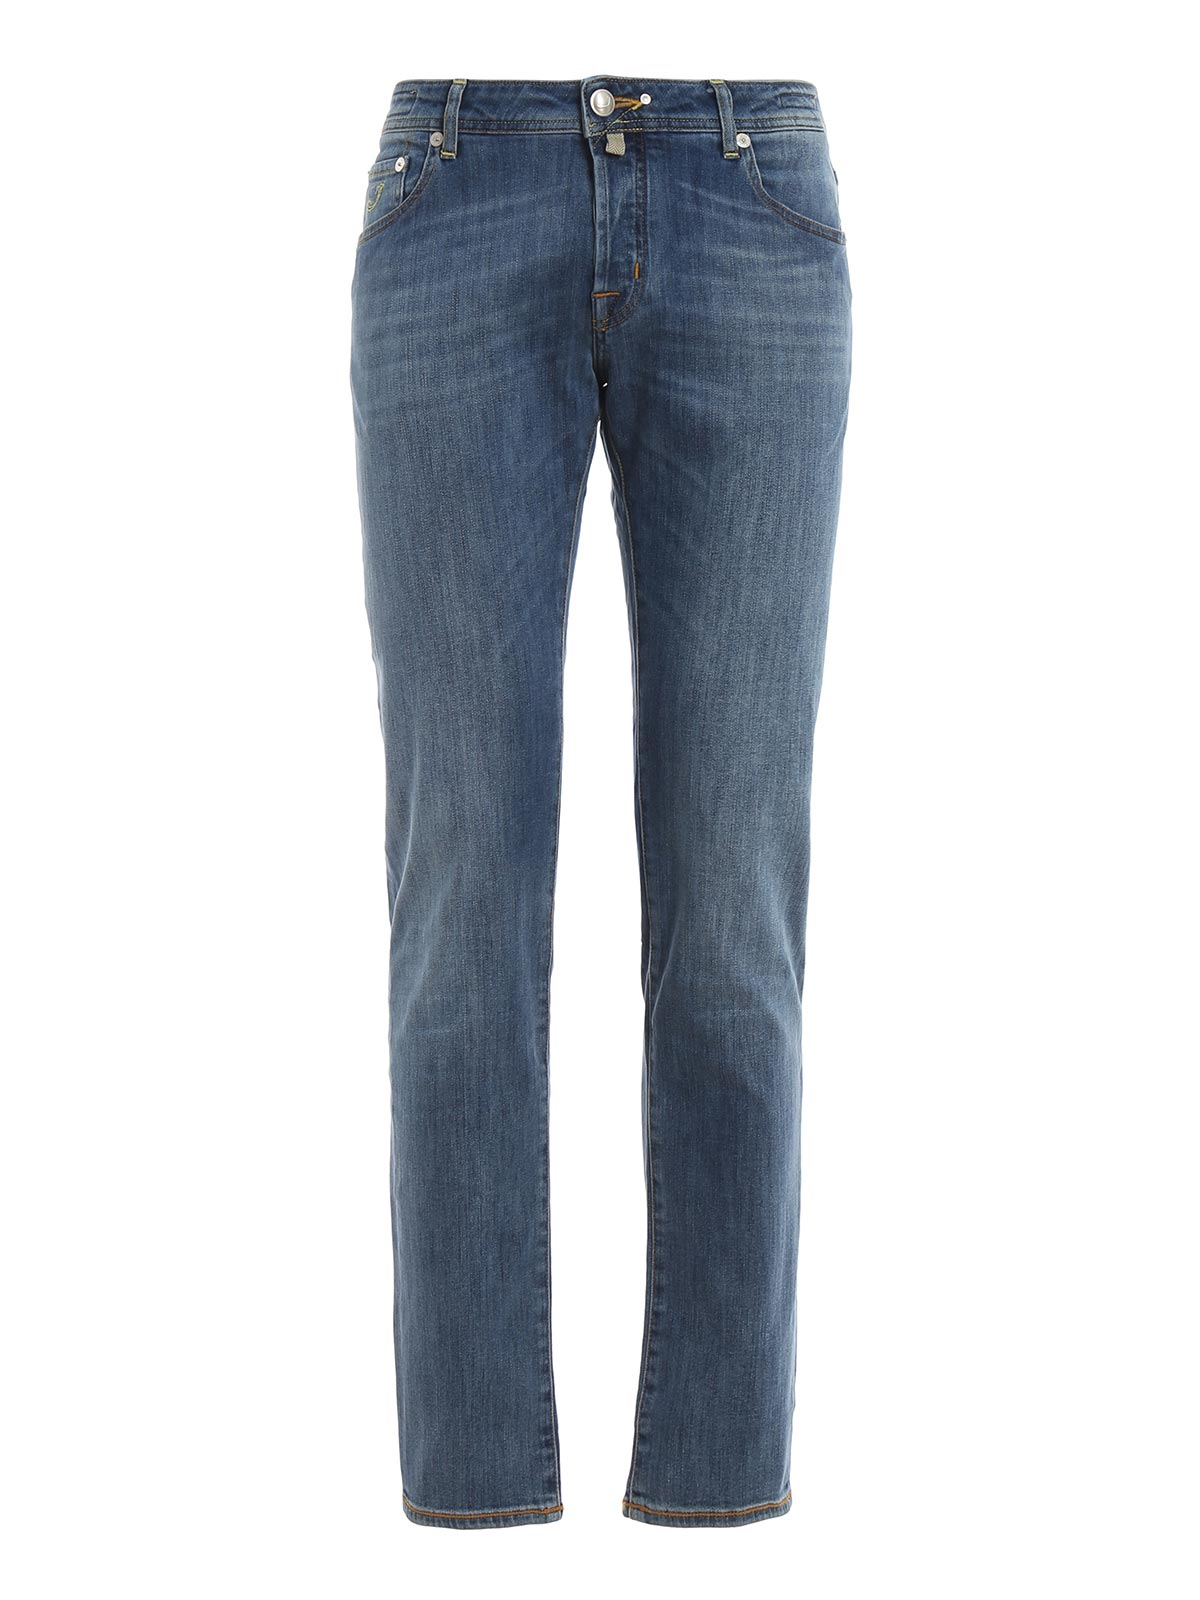 Picture of JACOB COHEN | Men's Light Denim Jeans